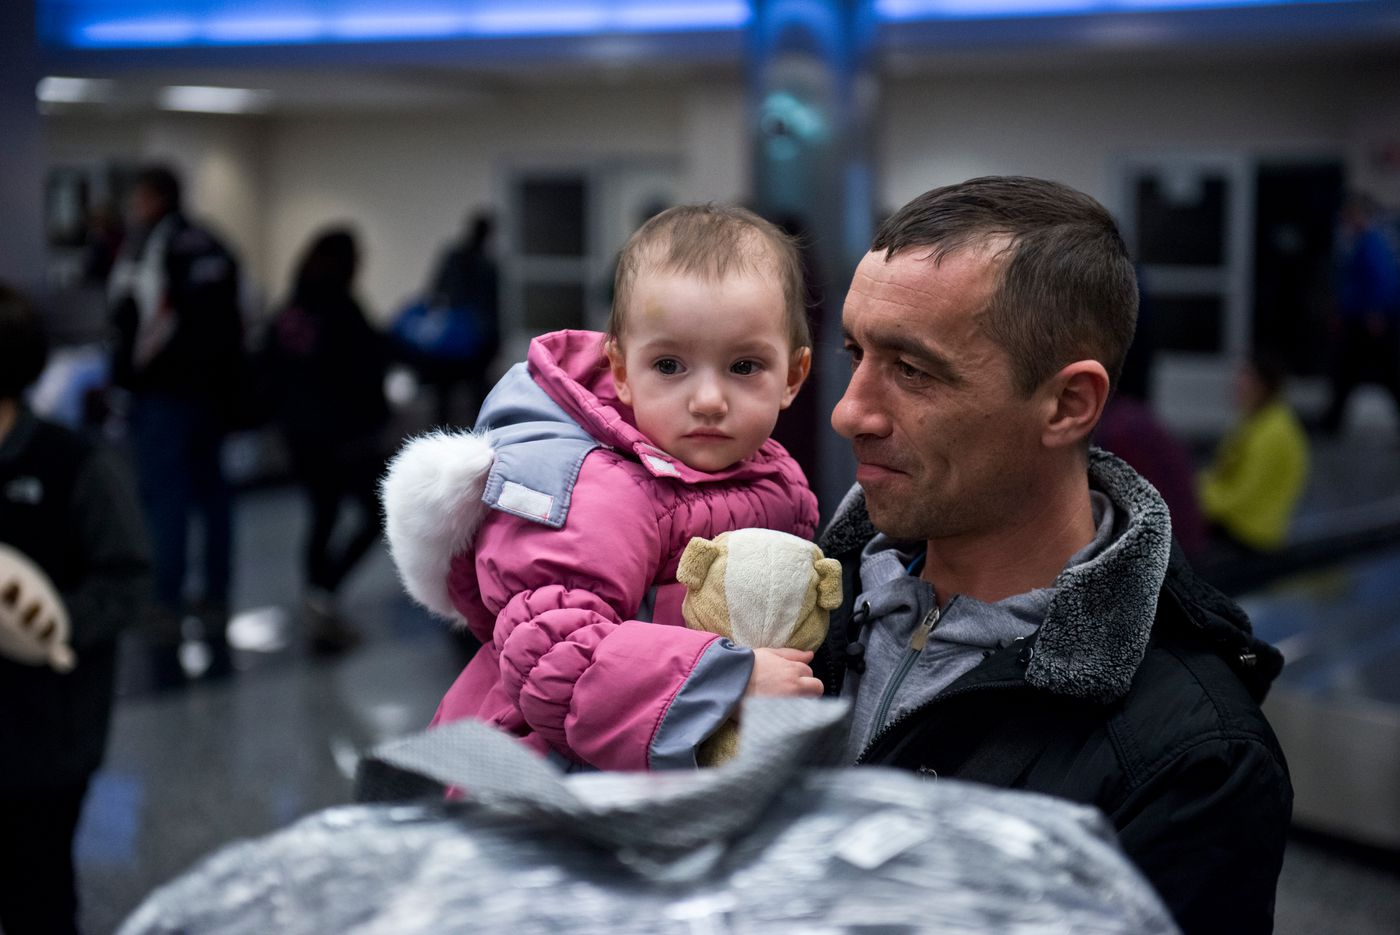 Two-year-old Diana Trashchuk and her father, Mykhailo Trashchuk, are two of four refugees who arrived in Anchorage on Feb. 16 from Ukraine. The group was assisted in Alaska by Refugee Assistance and Immigration Services. (Marc Lester / Alaska Dispatch News)